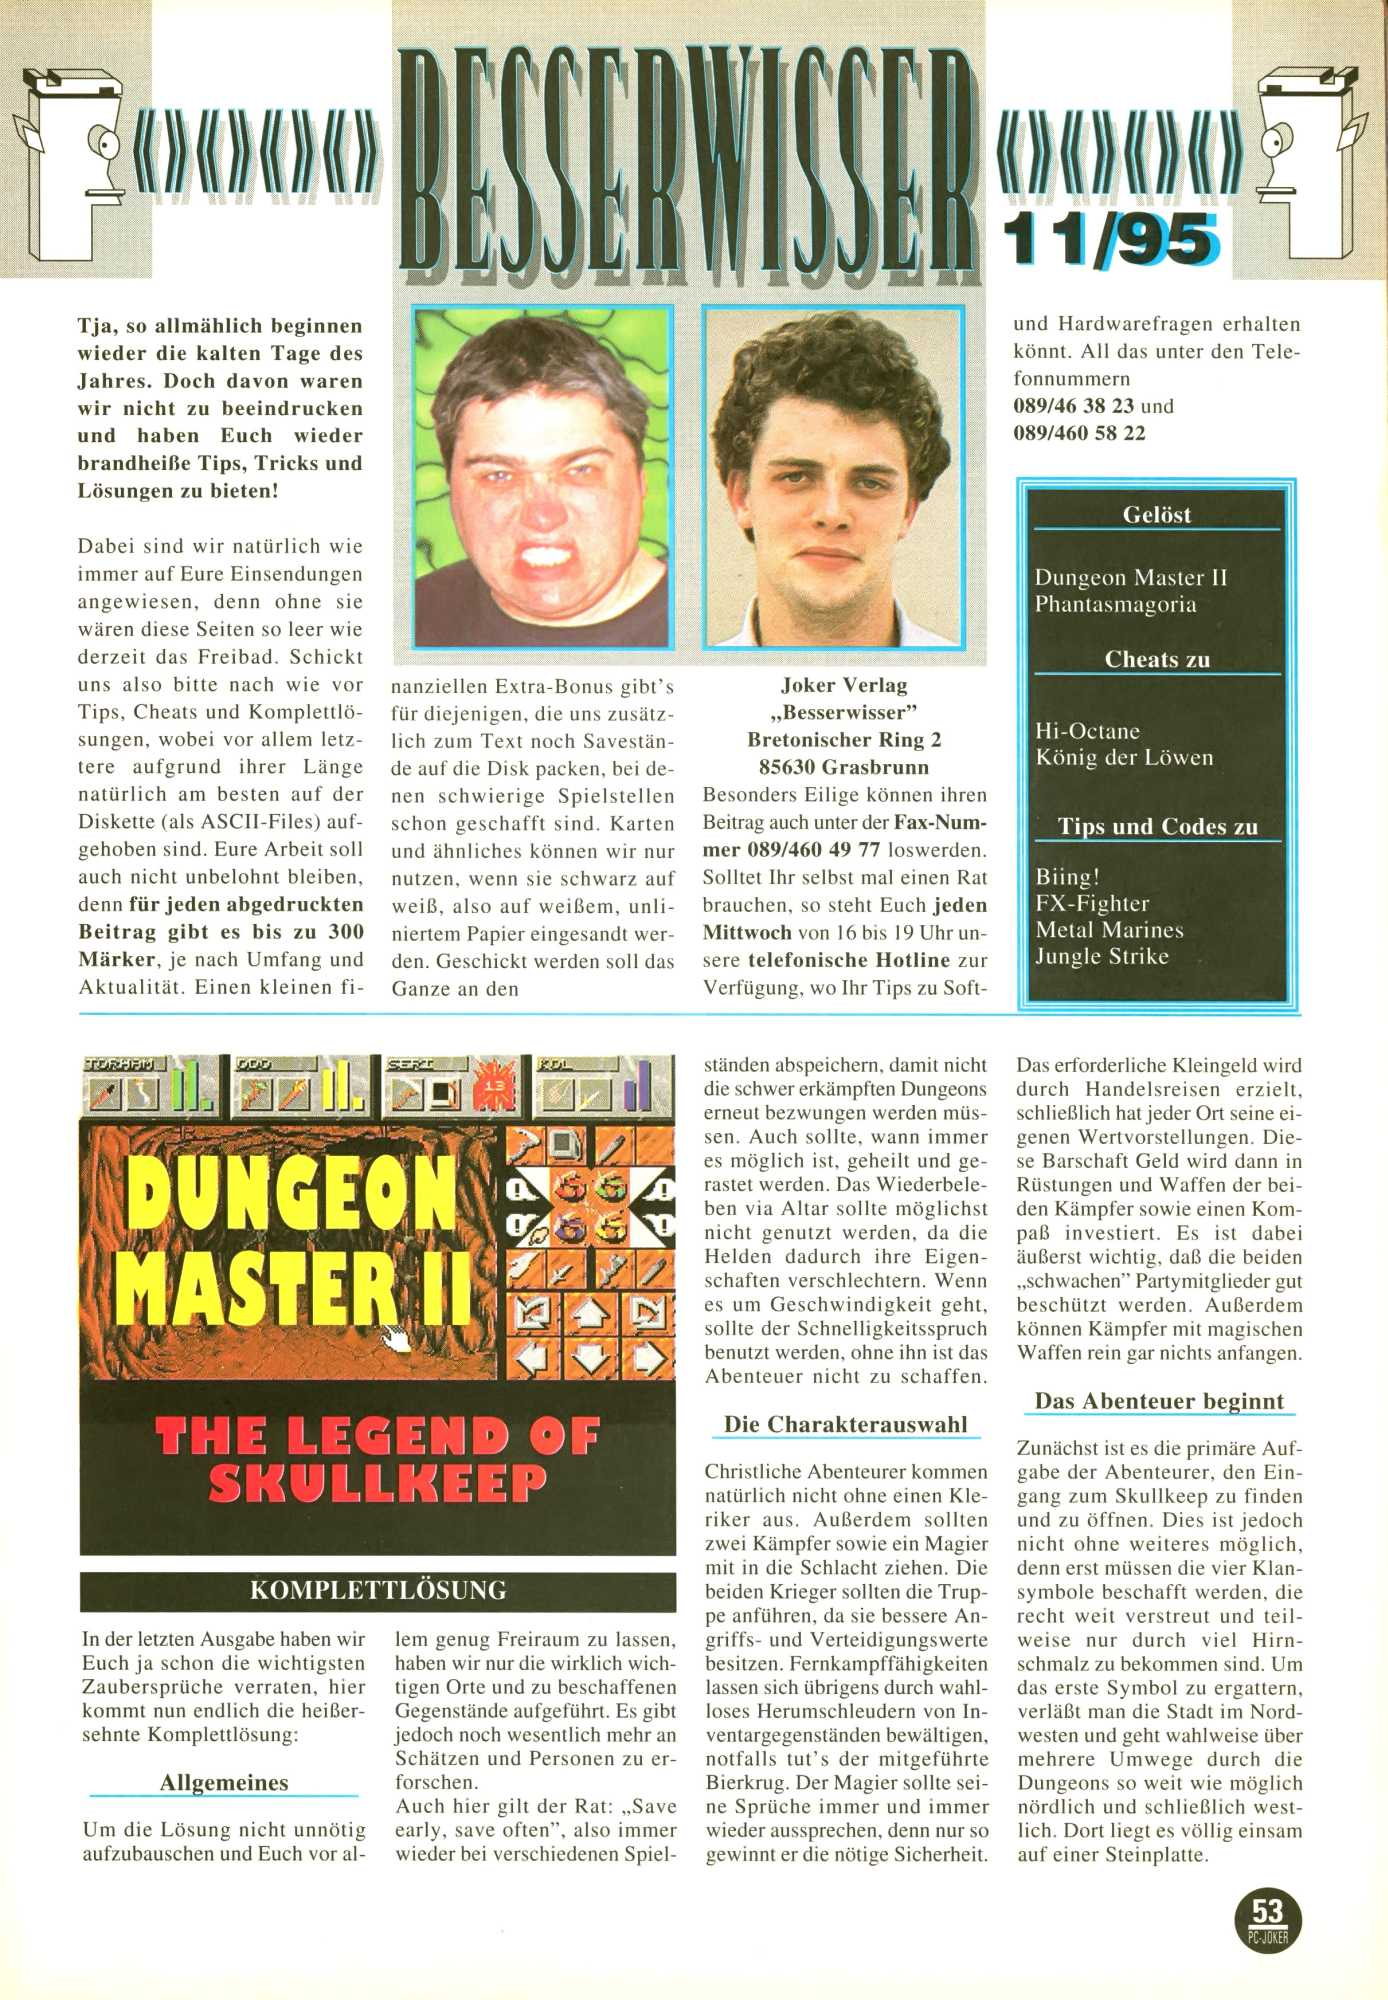 Dungeon Master II for PC Guide published in German magazine 'PC Joker', November 1995, Page 53